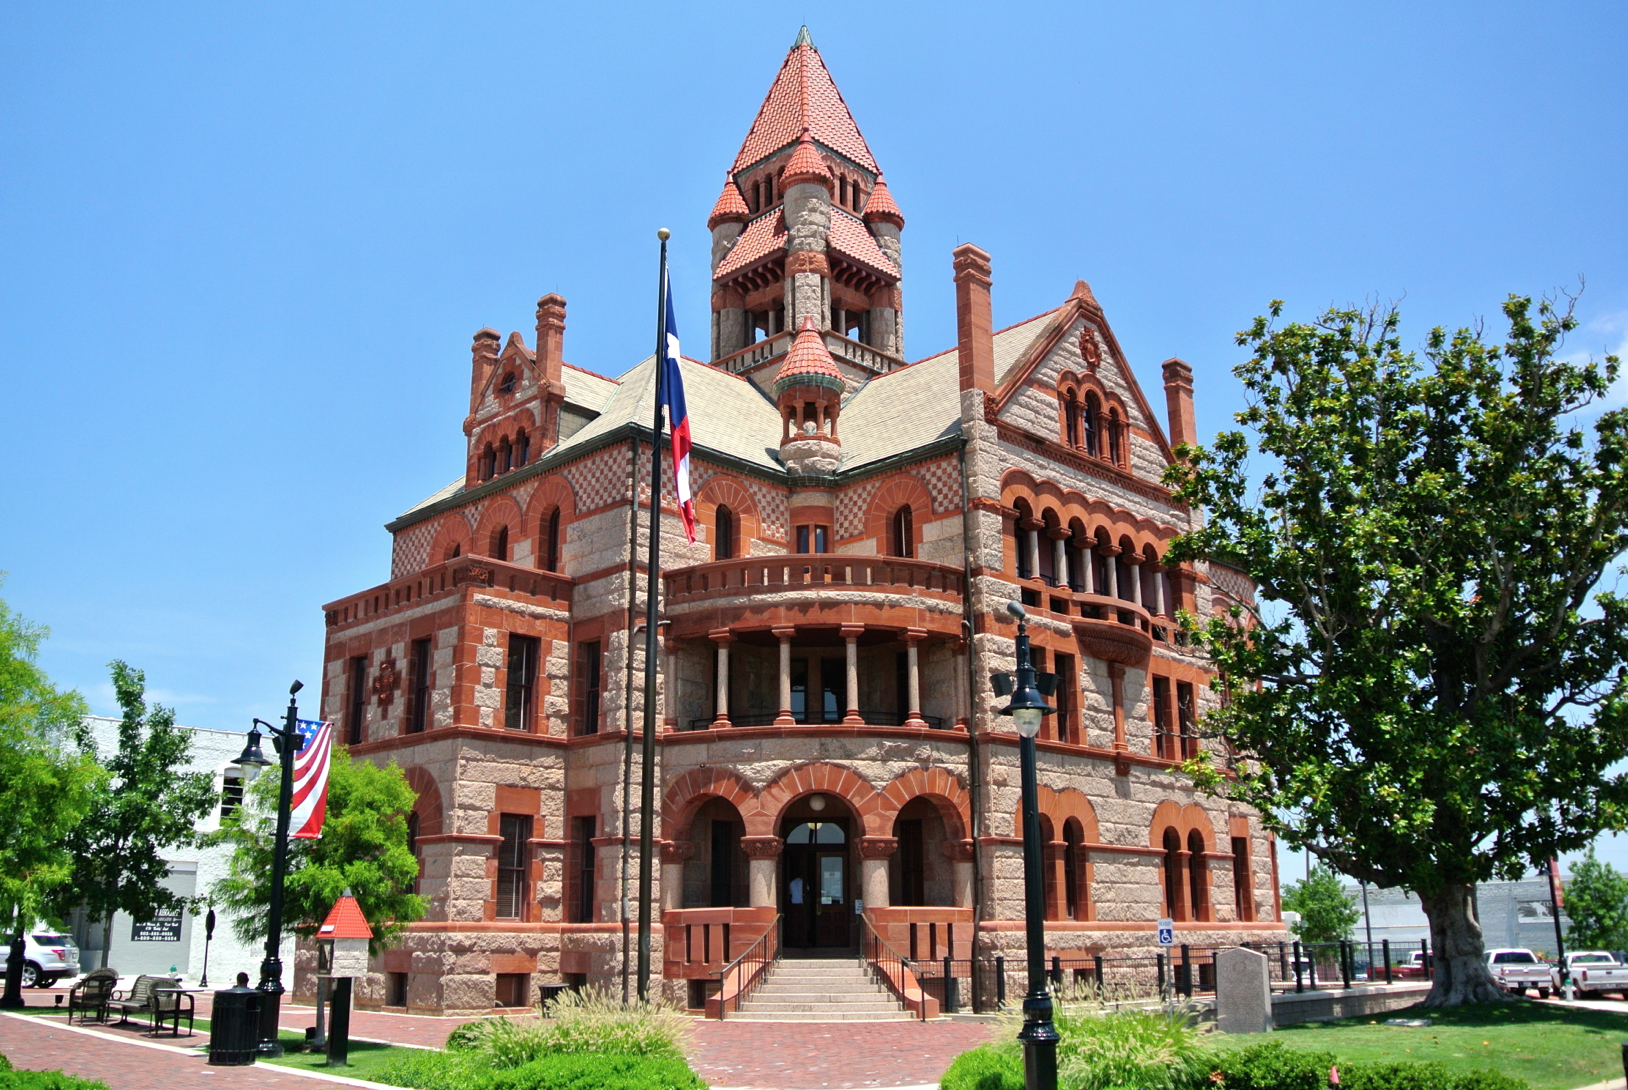 Hopkins County Courthouse, Sulphur Springs, Texas